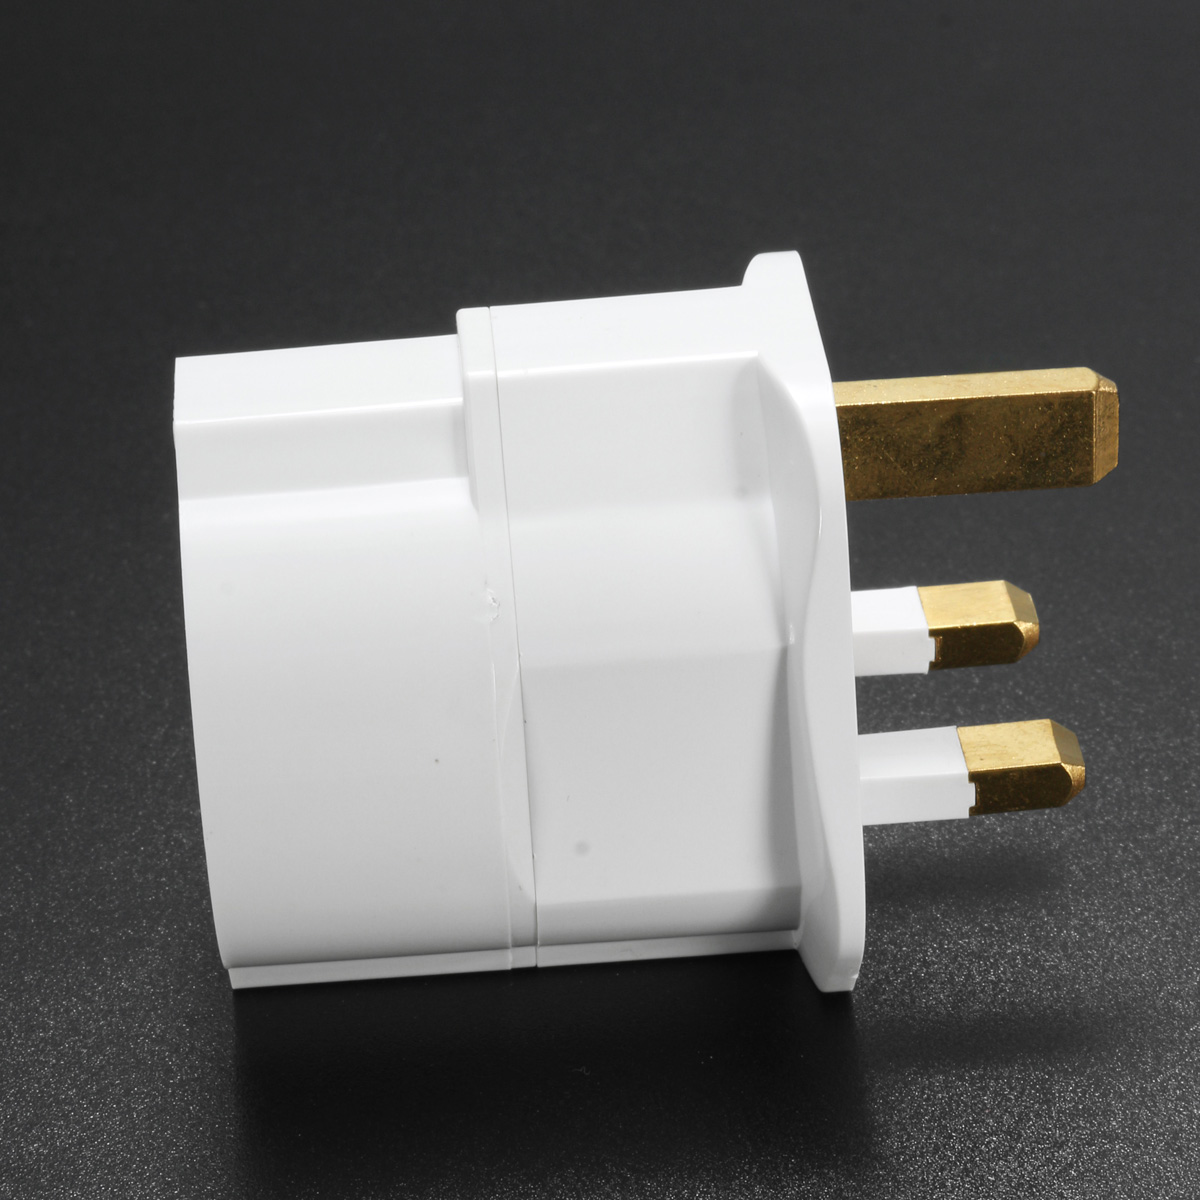 European 2 Pin to UK 3 Pin Plug Adaptor EU Schuko Travel Mains Adapter Max 3250W